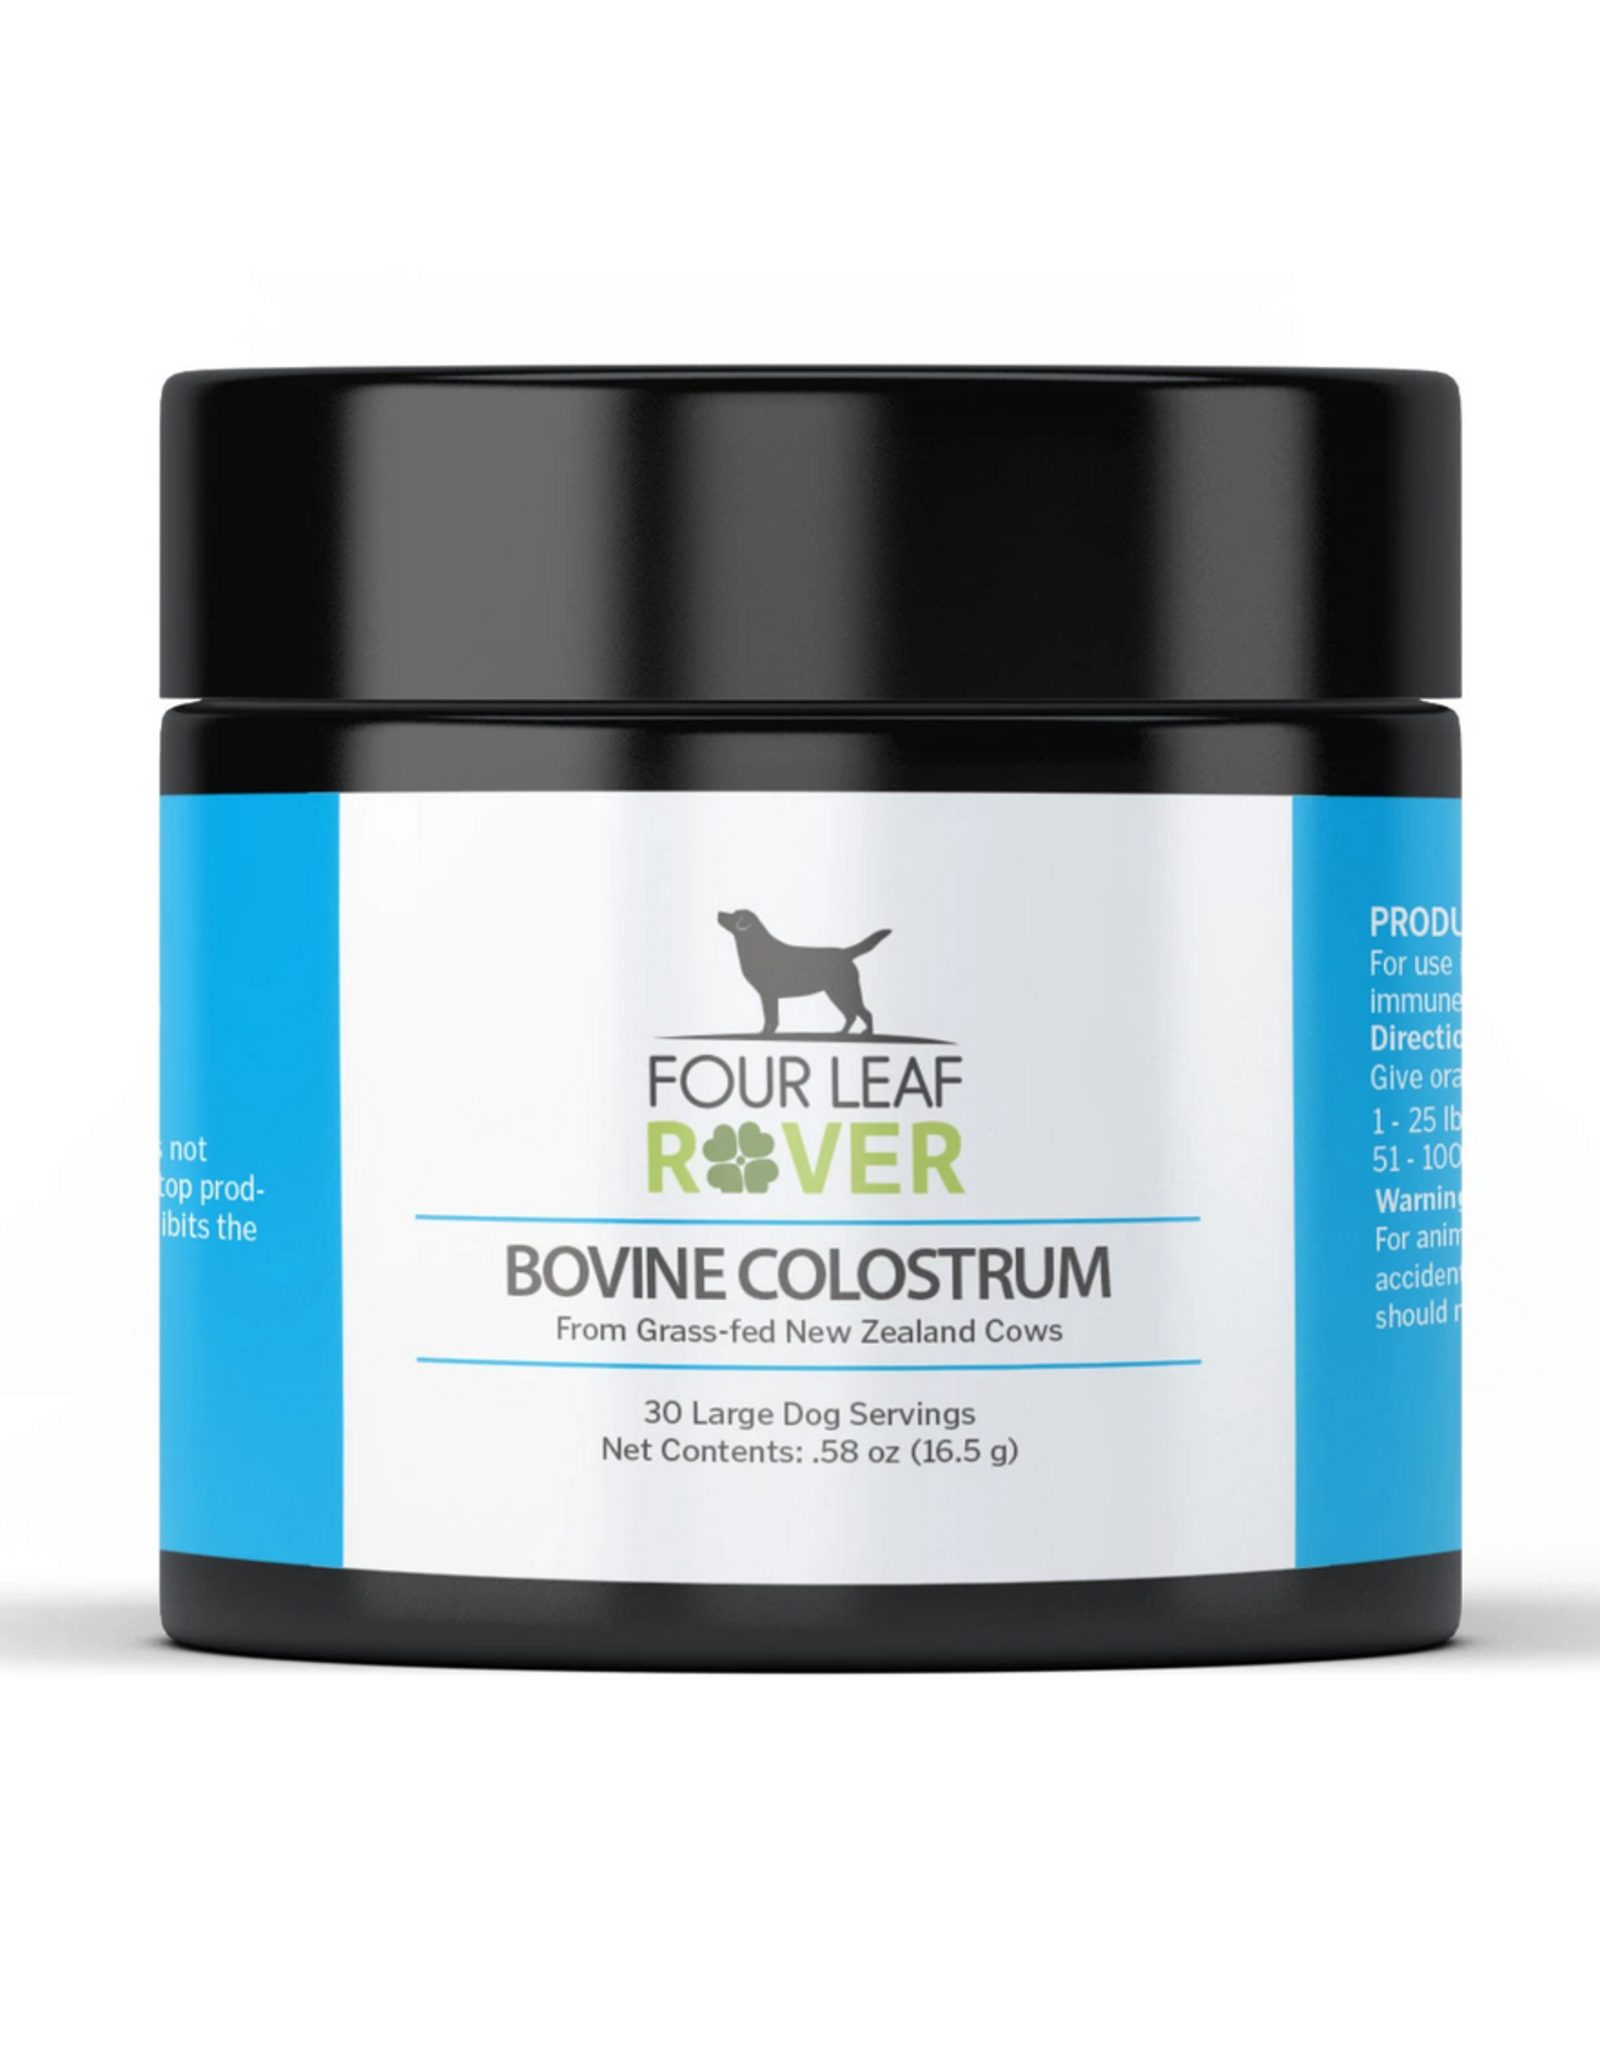 FOUR LEAF ROVER FLR BOVINE COLOSTRUM